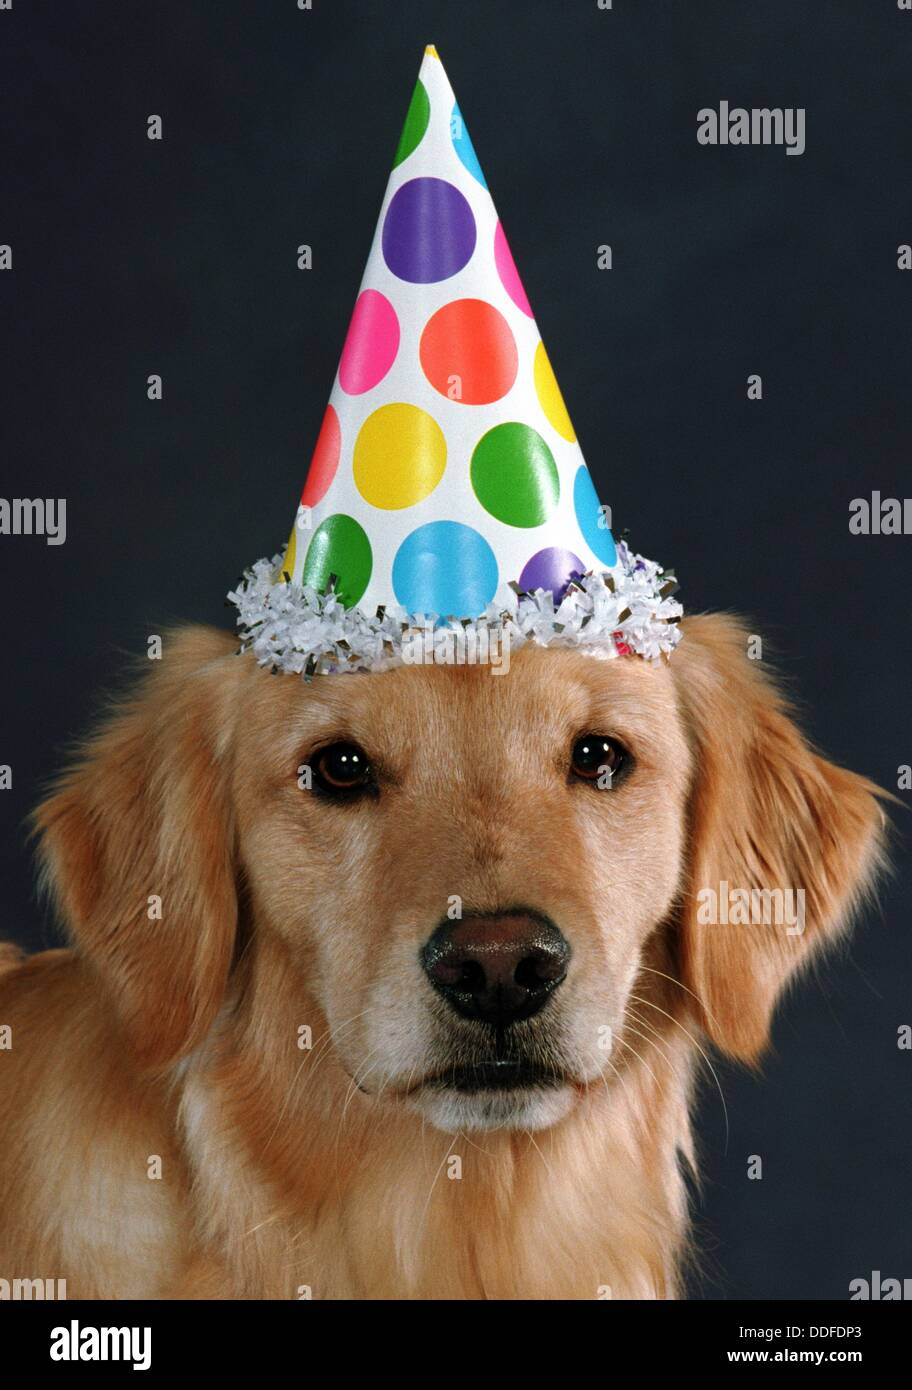 Golden Retriever With Party Hat Stock Photo 59961723 Alamy